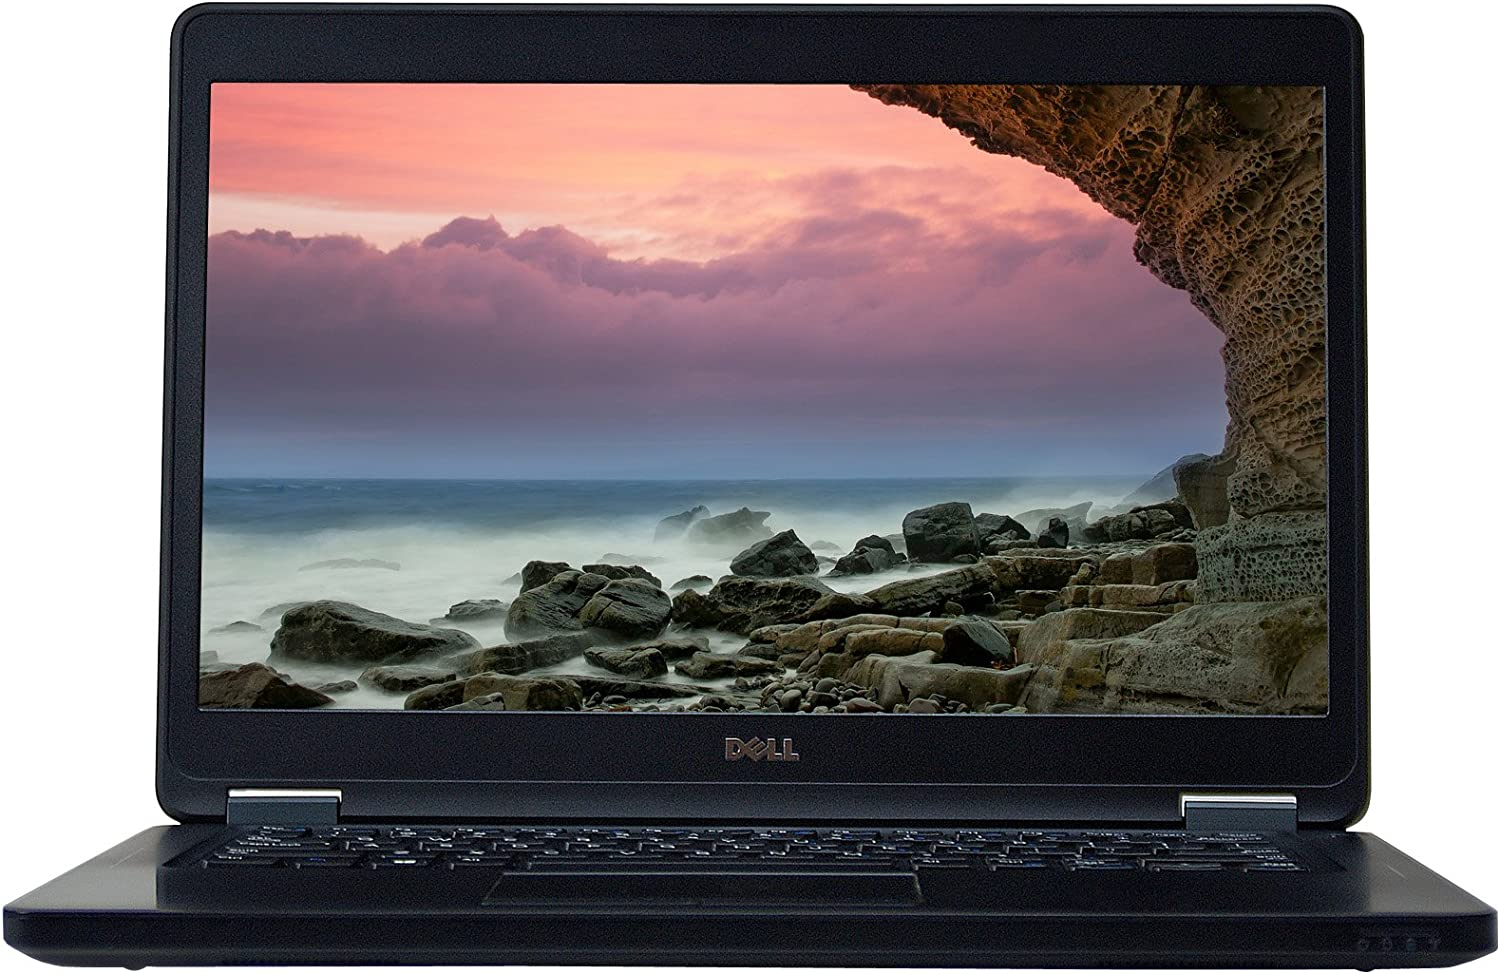 Dell Latitude E5450 14in Laptop, Core i5-5300U 2.3GHz, 8GB Ram, 480GB SSD, Windows 10 Pro 64bit (Renewed)